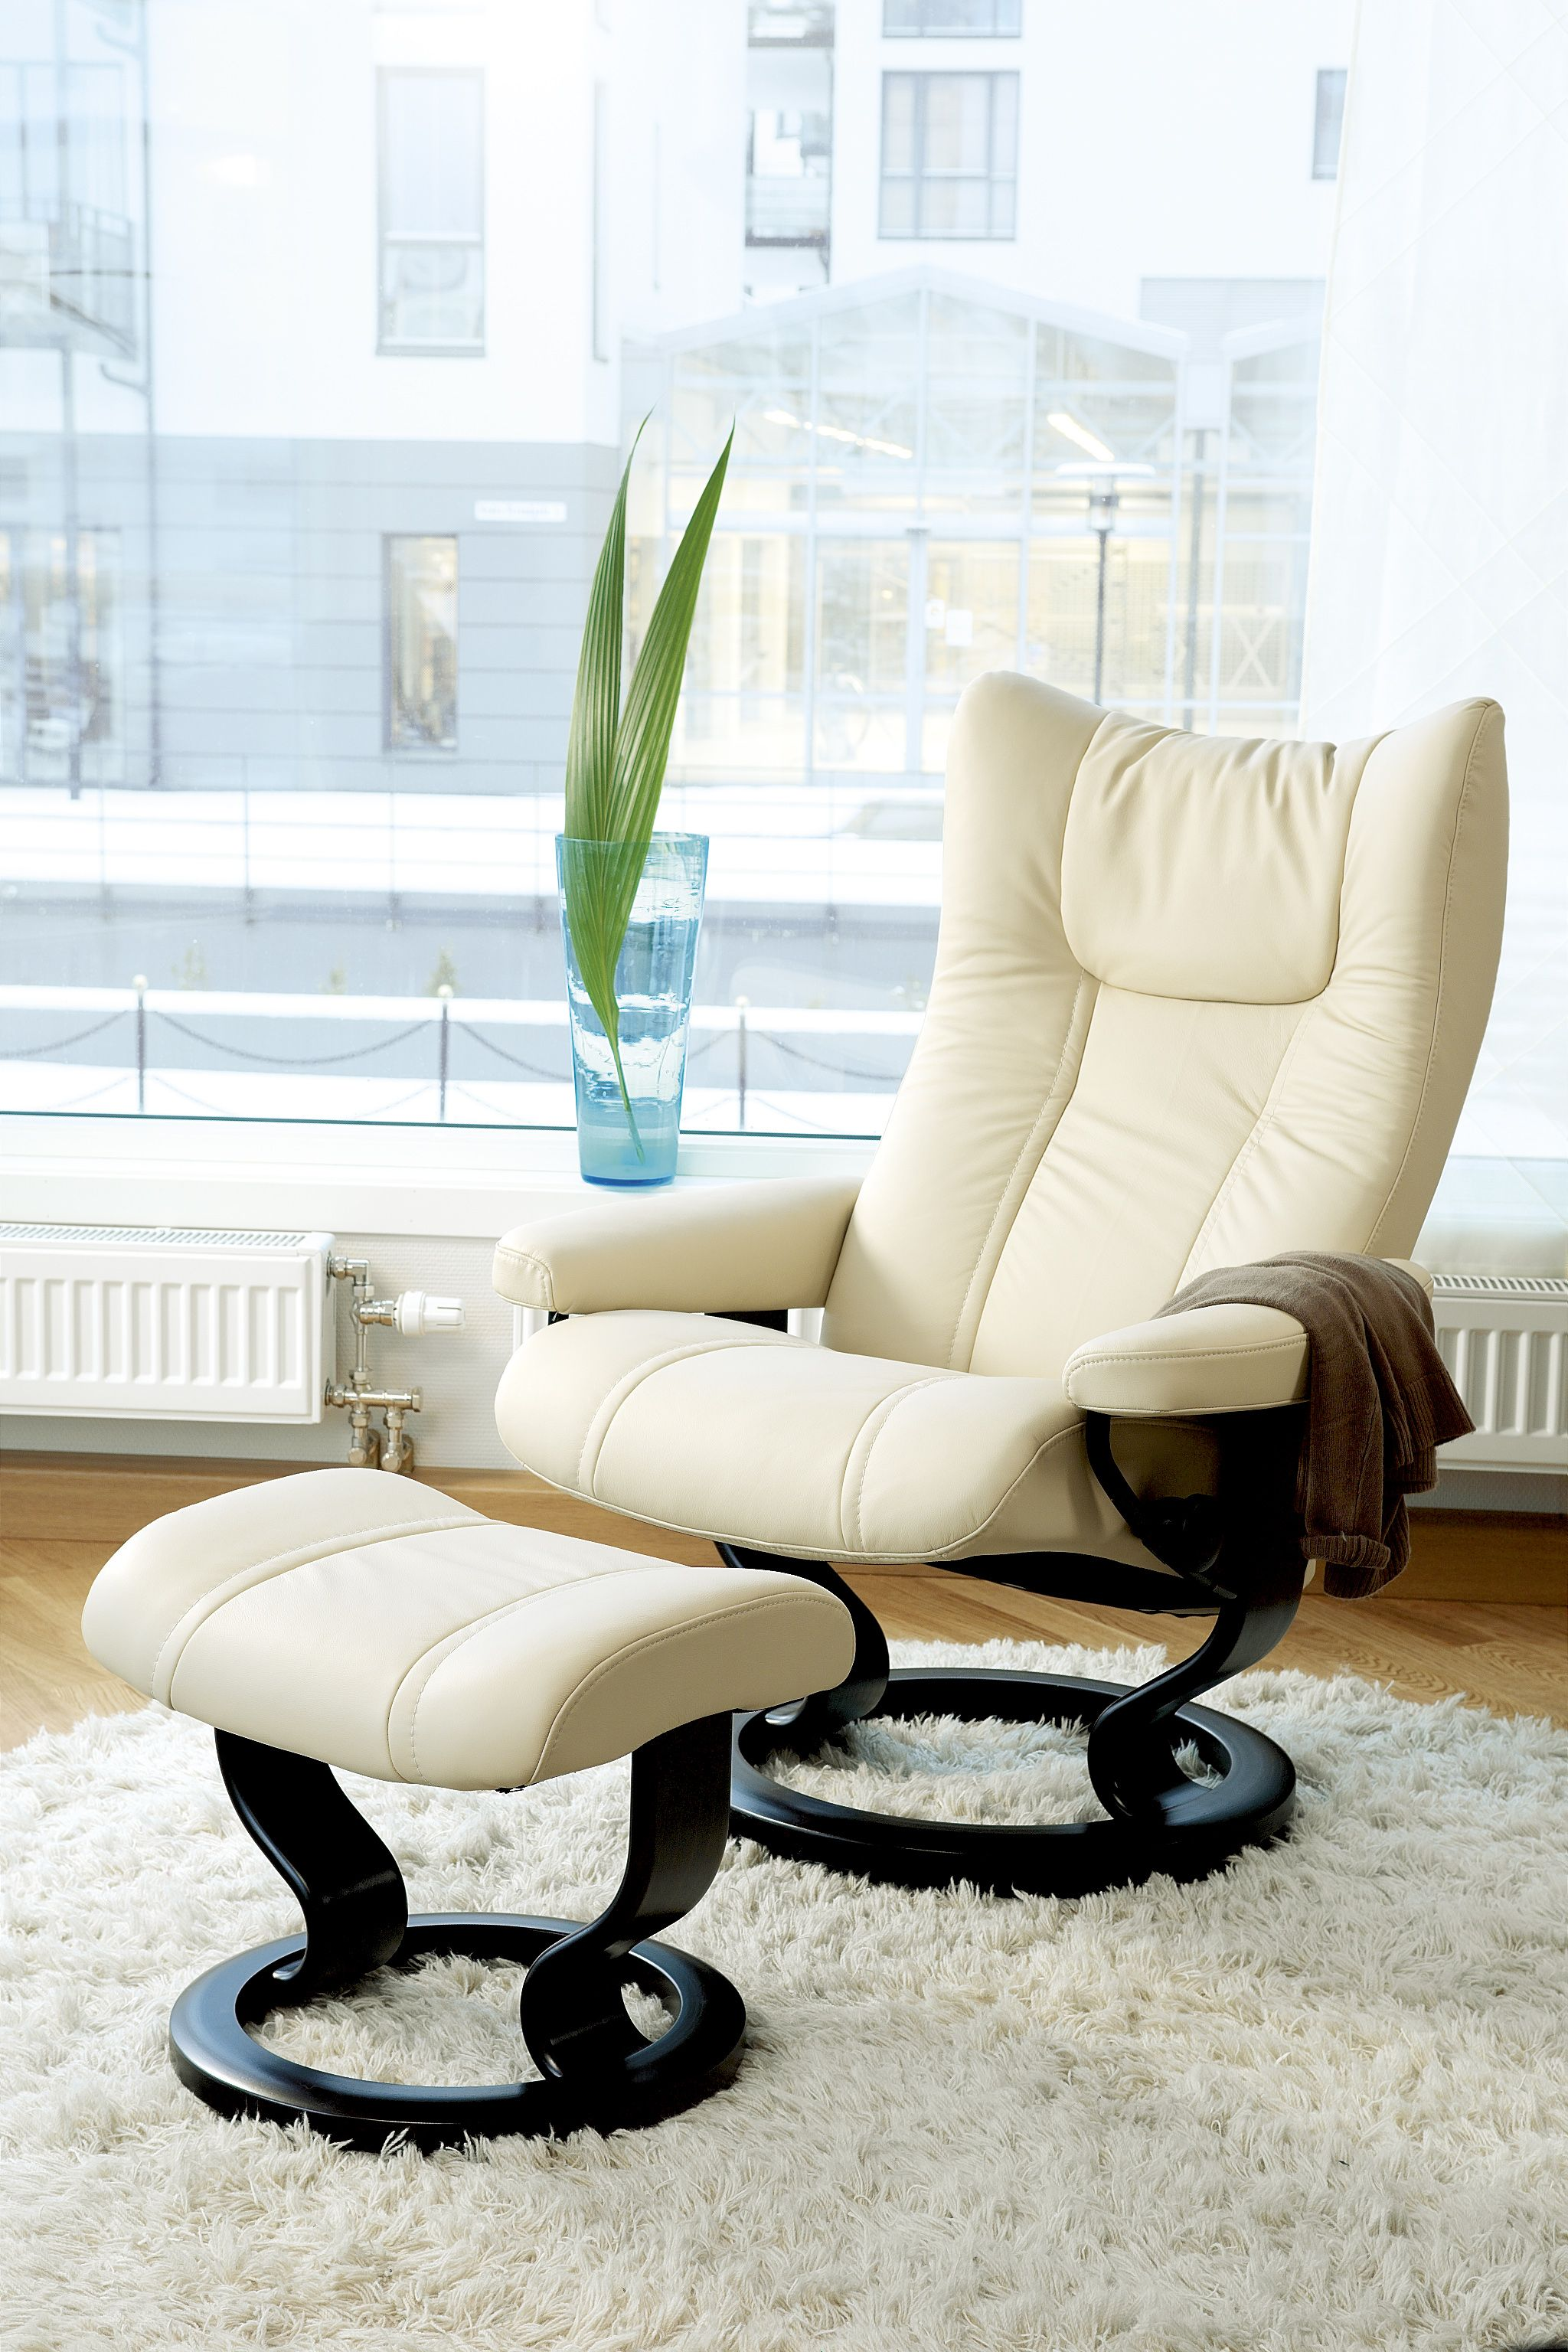 A Stylish Cream Recliner And Ottoman Perfect For The Modern Contemporary Living Room Home Stressless Recliners Provide Superior Comfort Support